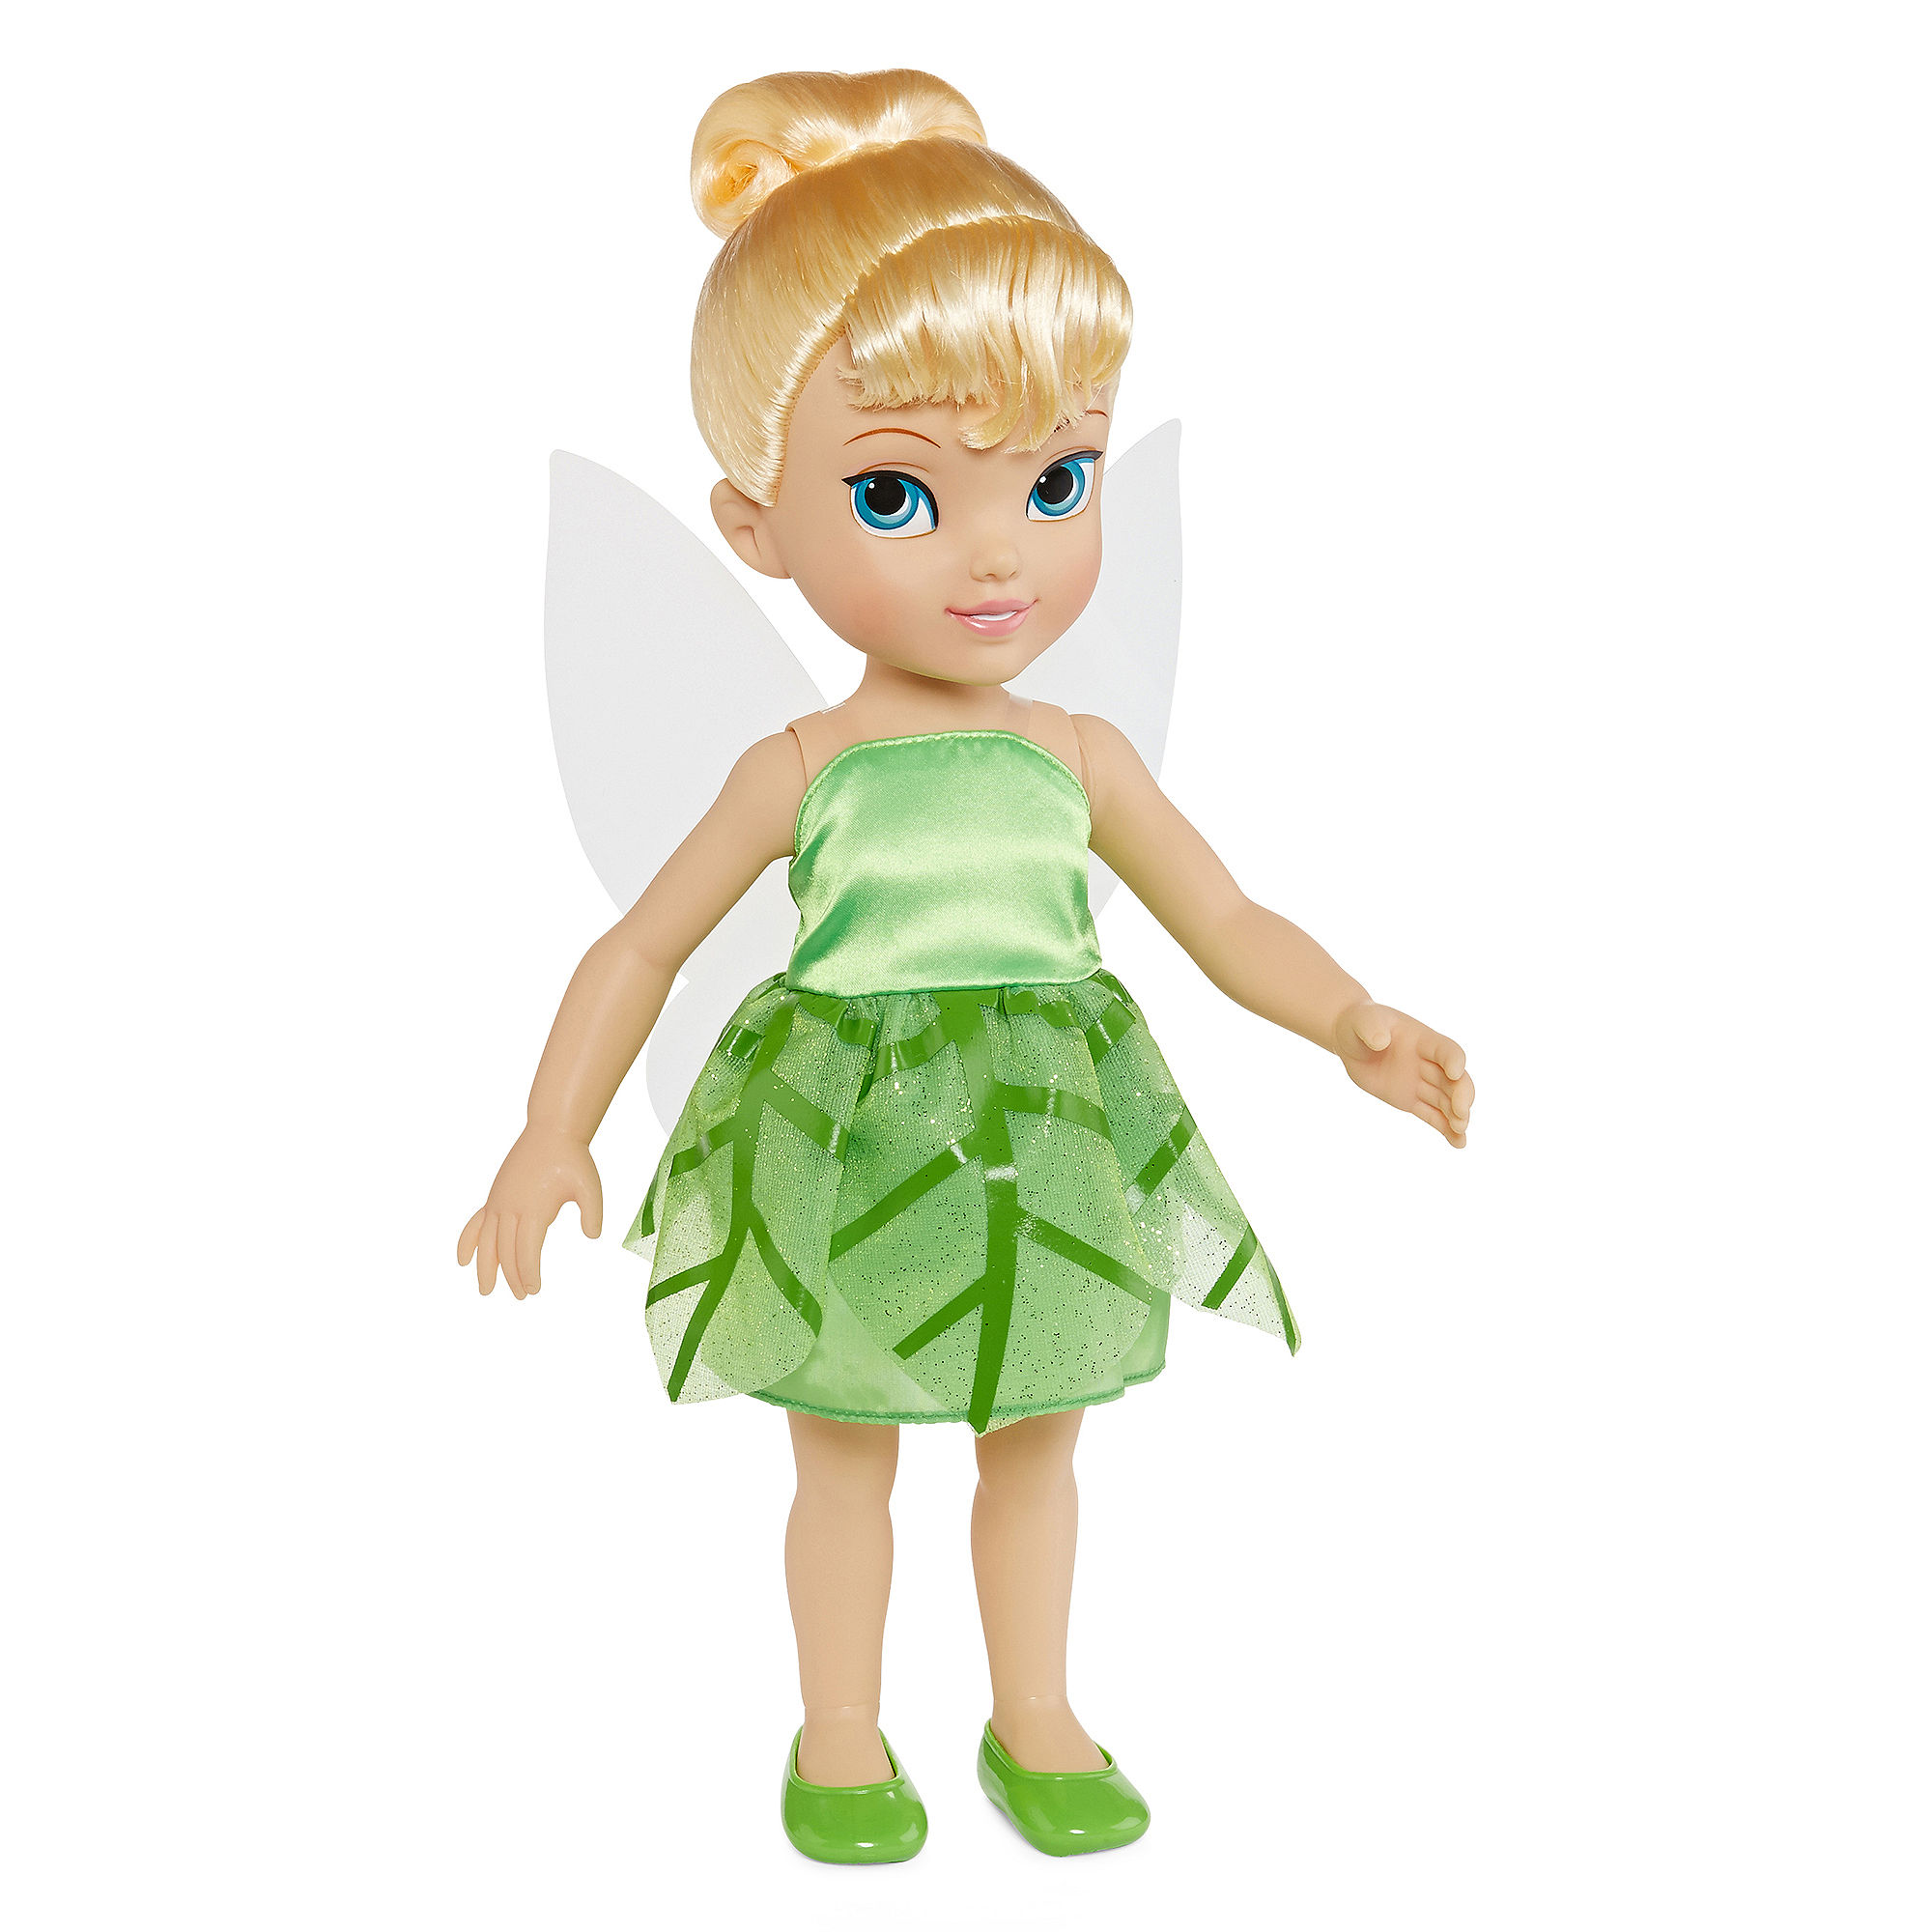 images collection of tinkerbell - photo #20